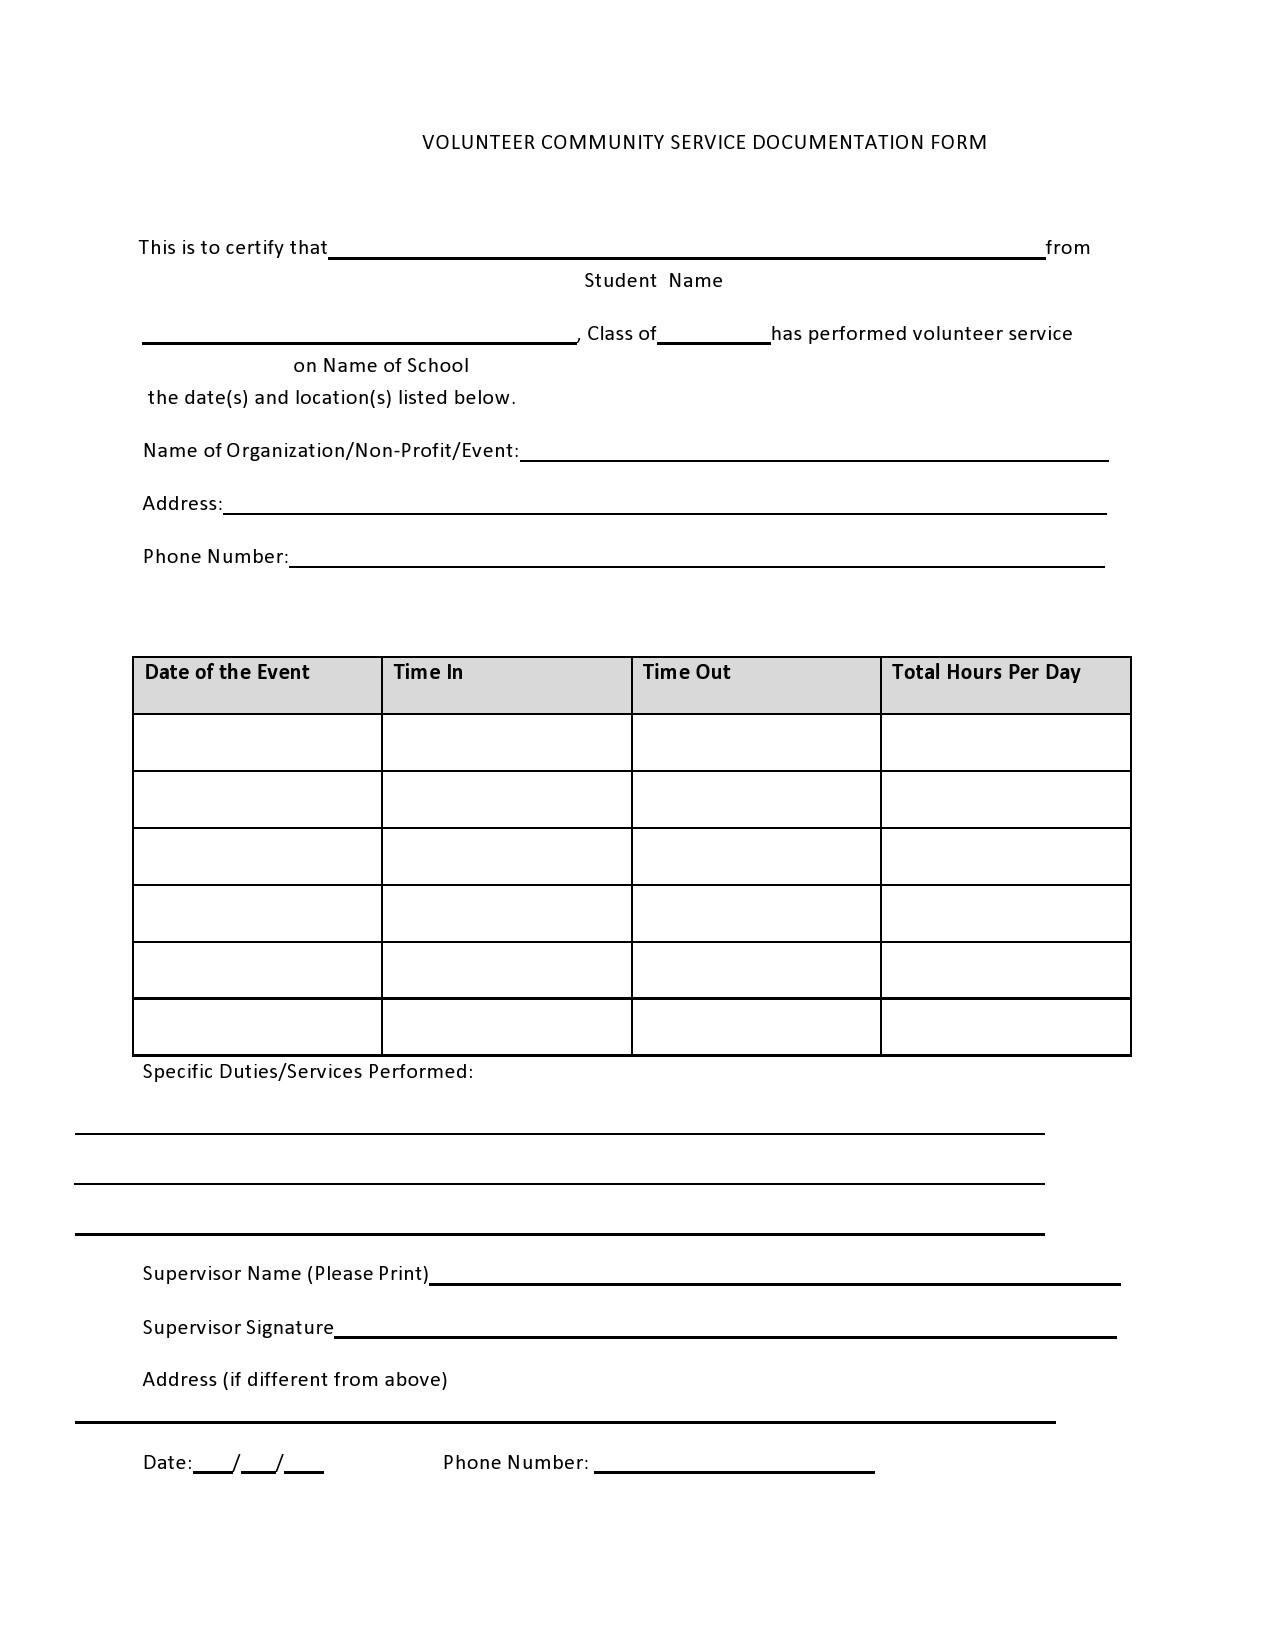 Free community service form 02